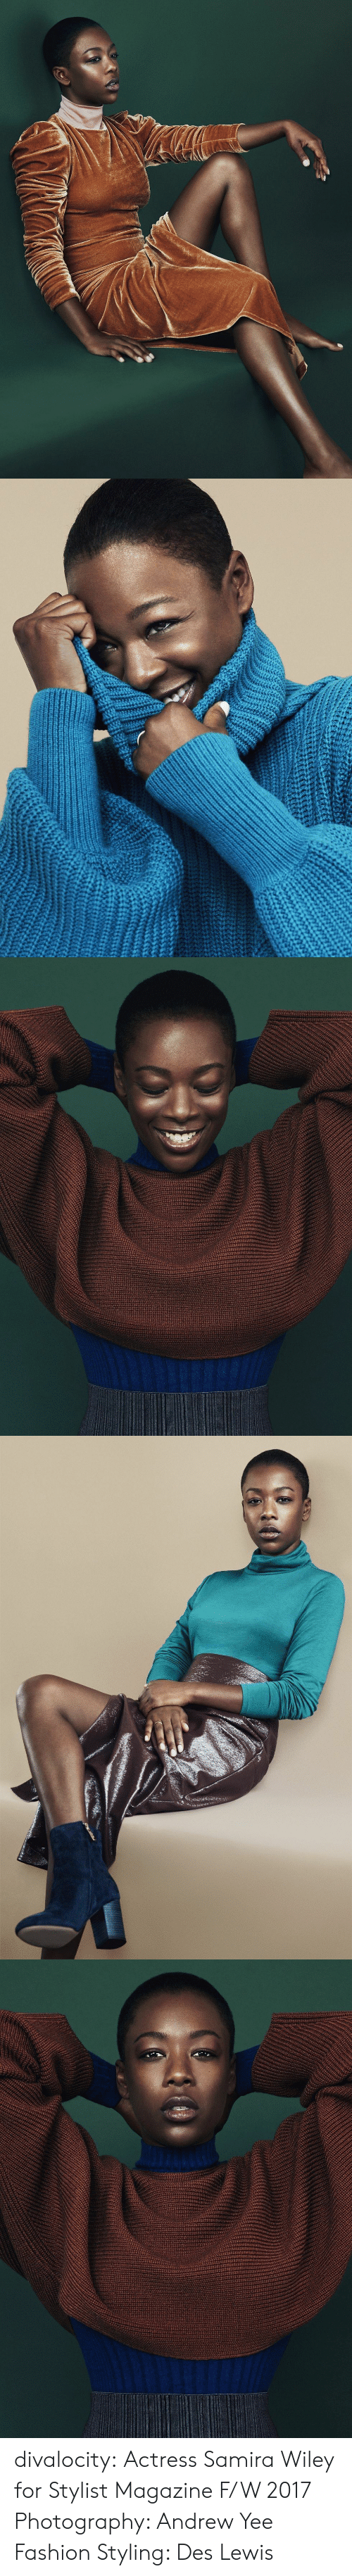 Fashion, Tumblr, and Yee: divalocity: Actress Samira Wiley for Stylist Magazine F/W 2017 Photography: Andrew Yee Fashion Styling: Des Lewis